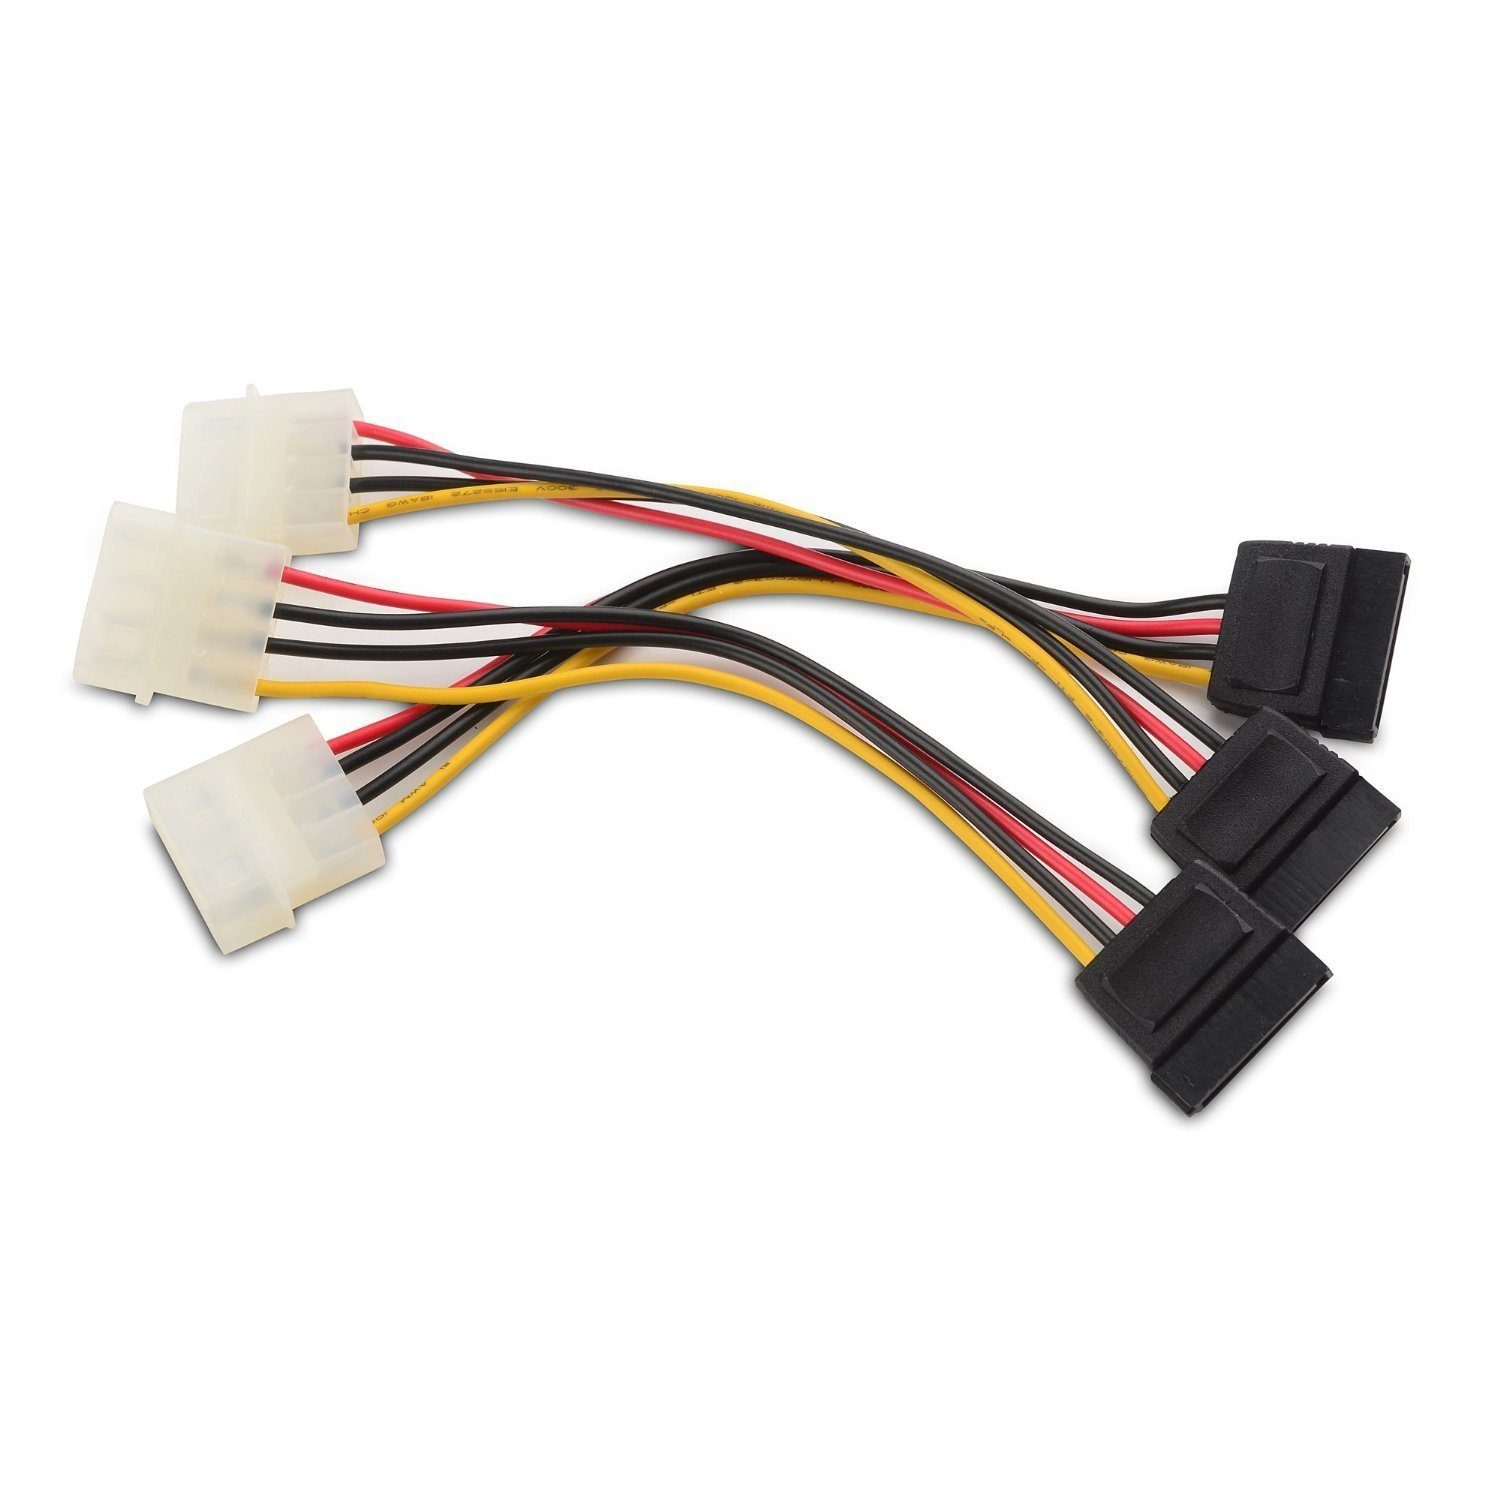 Cable Matters 3-Pack 4 Pin Molex to SATA Power Cable